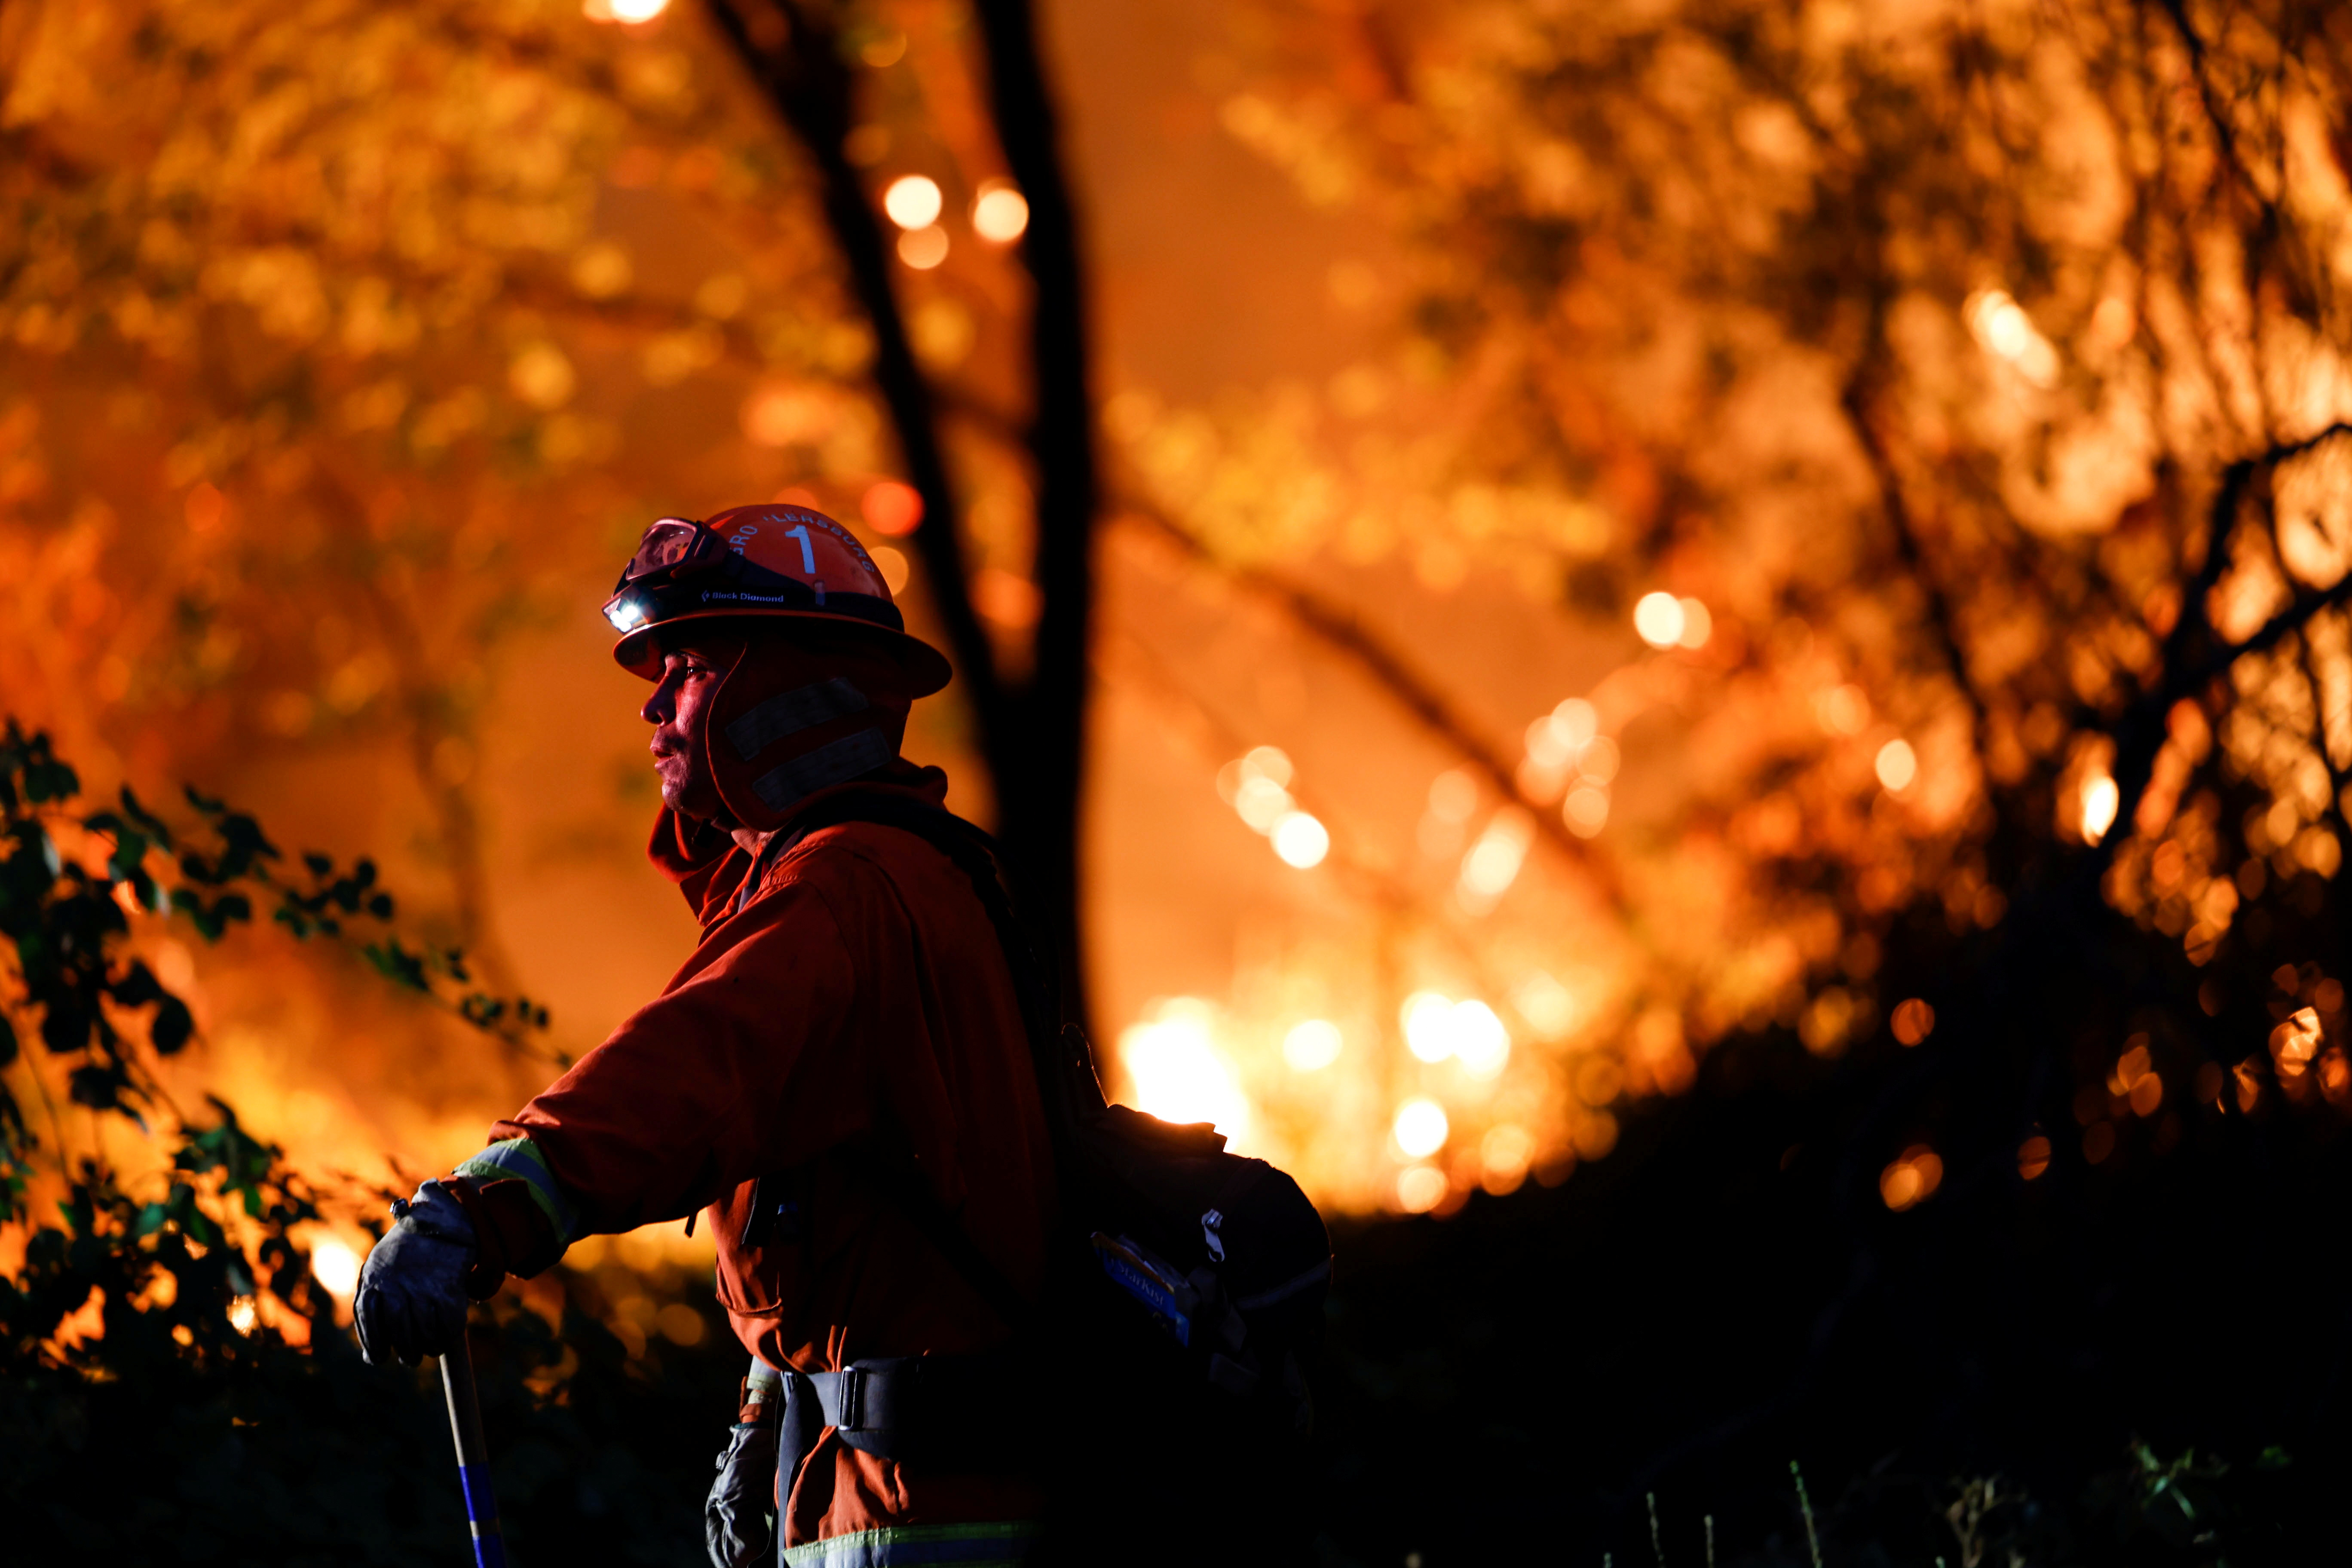 A firefighter monitors flames which were threatening homes by the River Fire, a wildfire near the Placer County town of Grass Valley, California, U.S., August 4, 2021. REUTERS/Fred Greaves